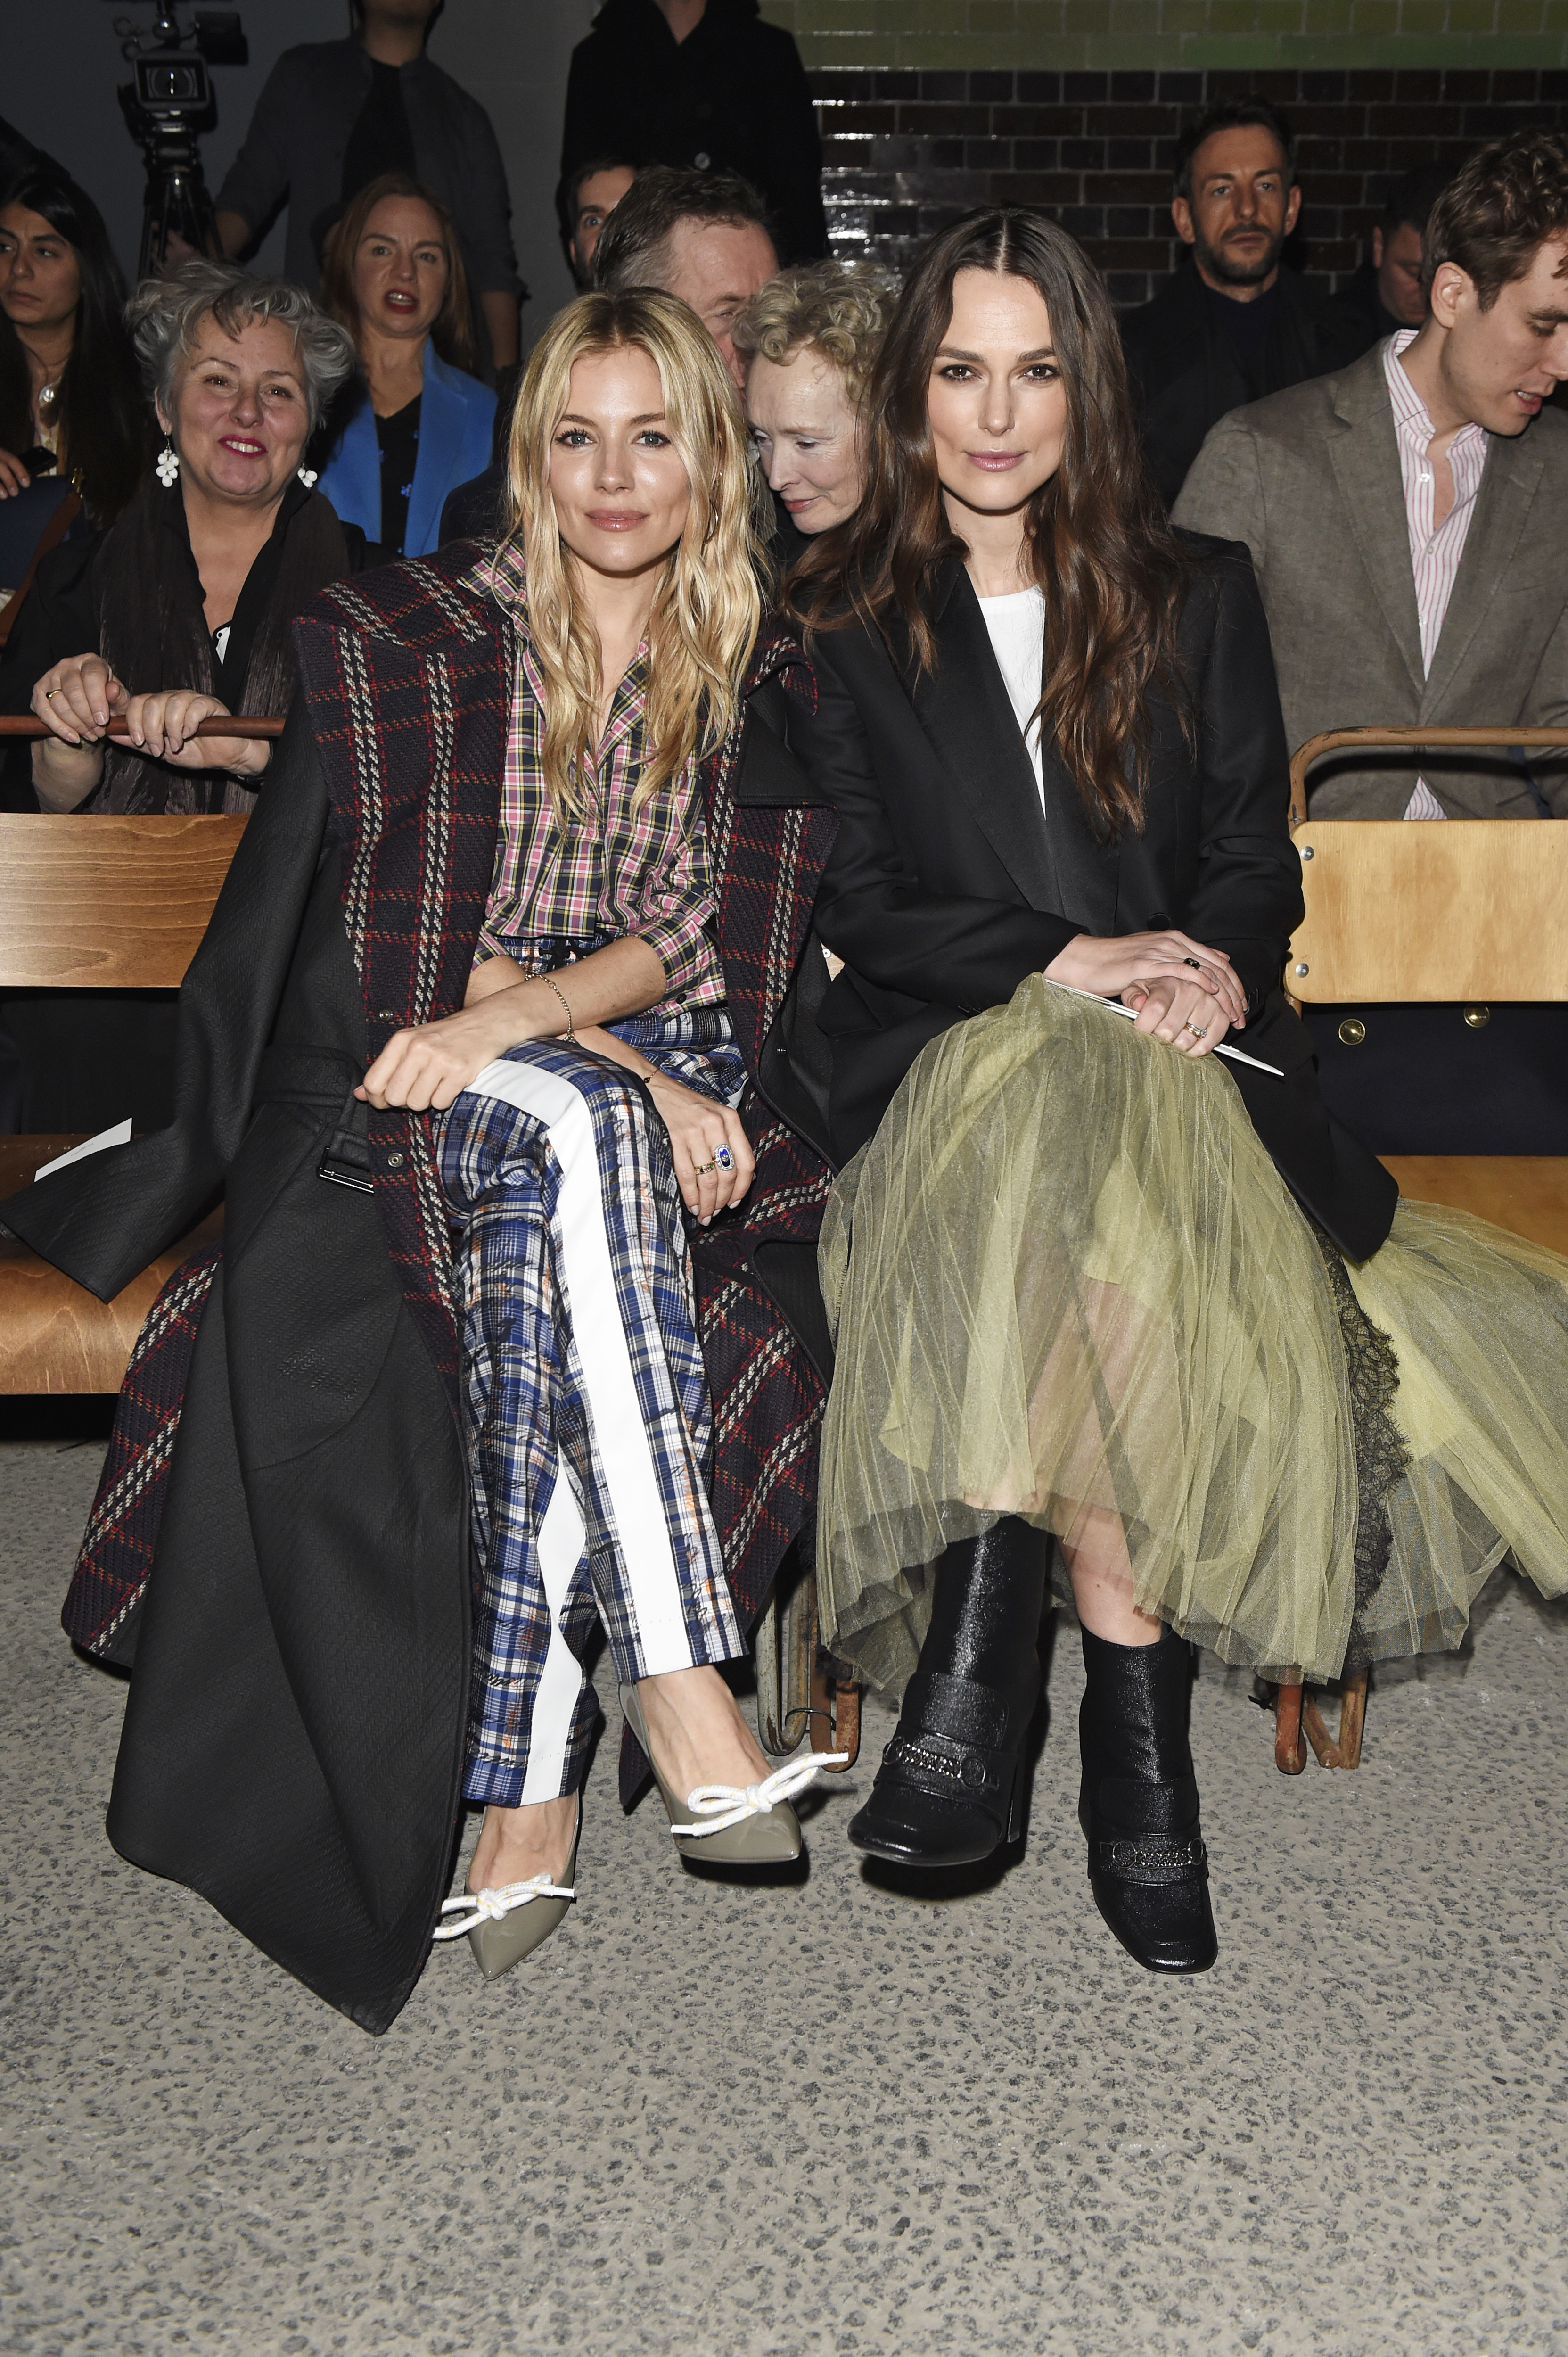 Sienna Miller and Keira Knightley attend the Burberry February 2018 show during London Fashion Week at Dimco Buildings in London on Feb. 17, 2018.